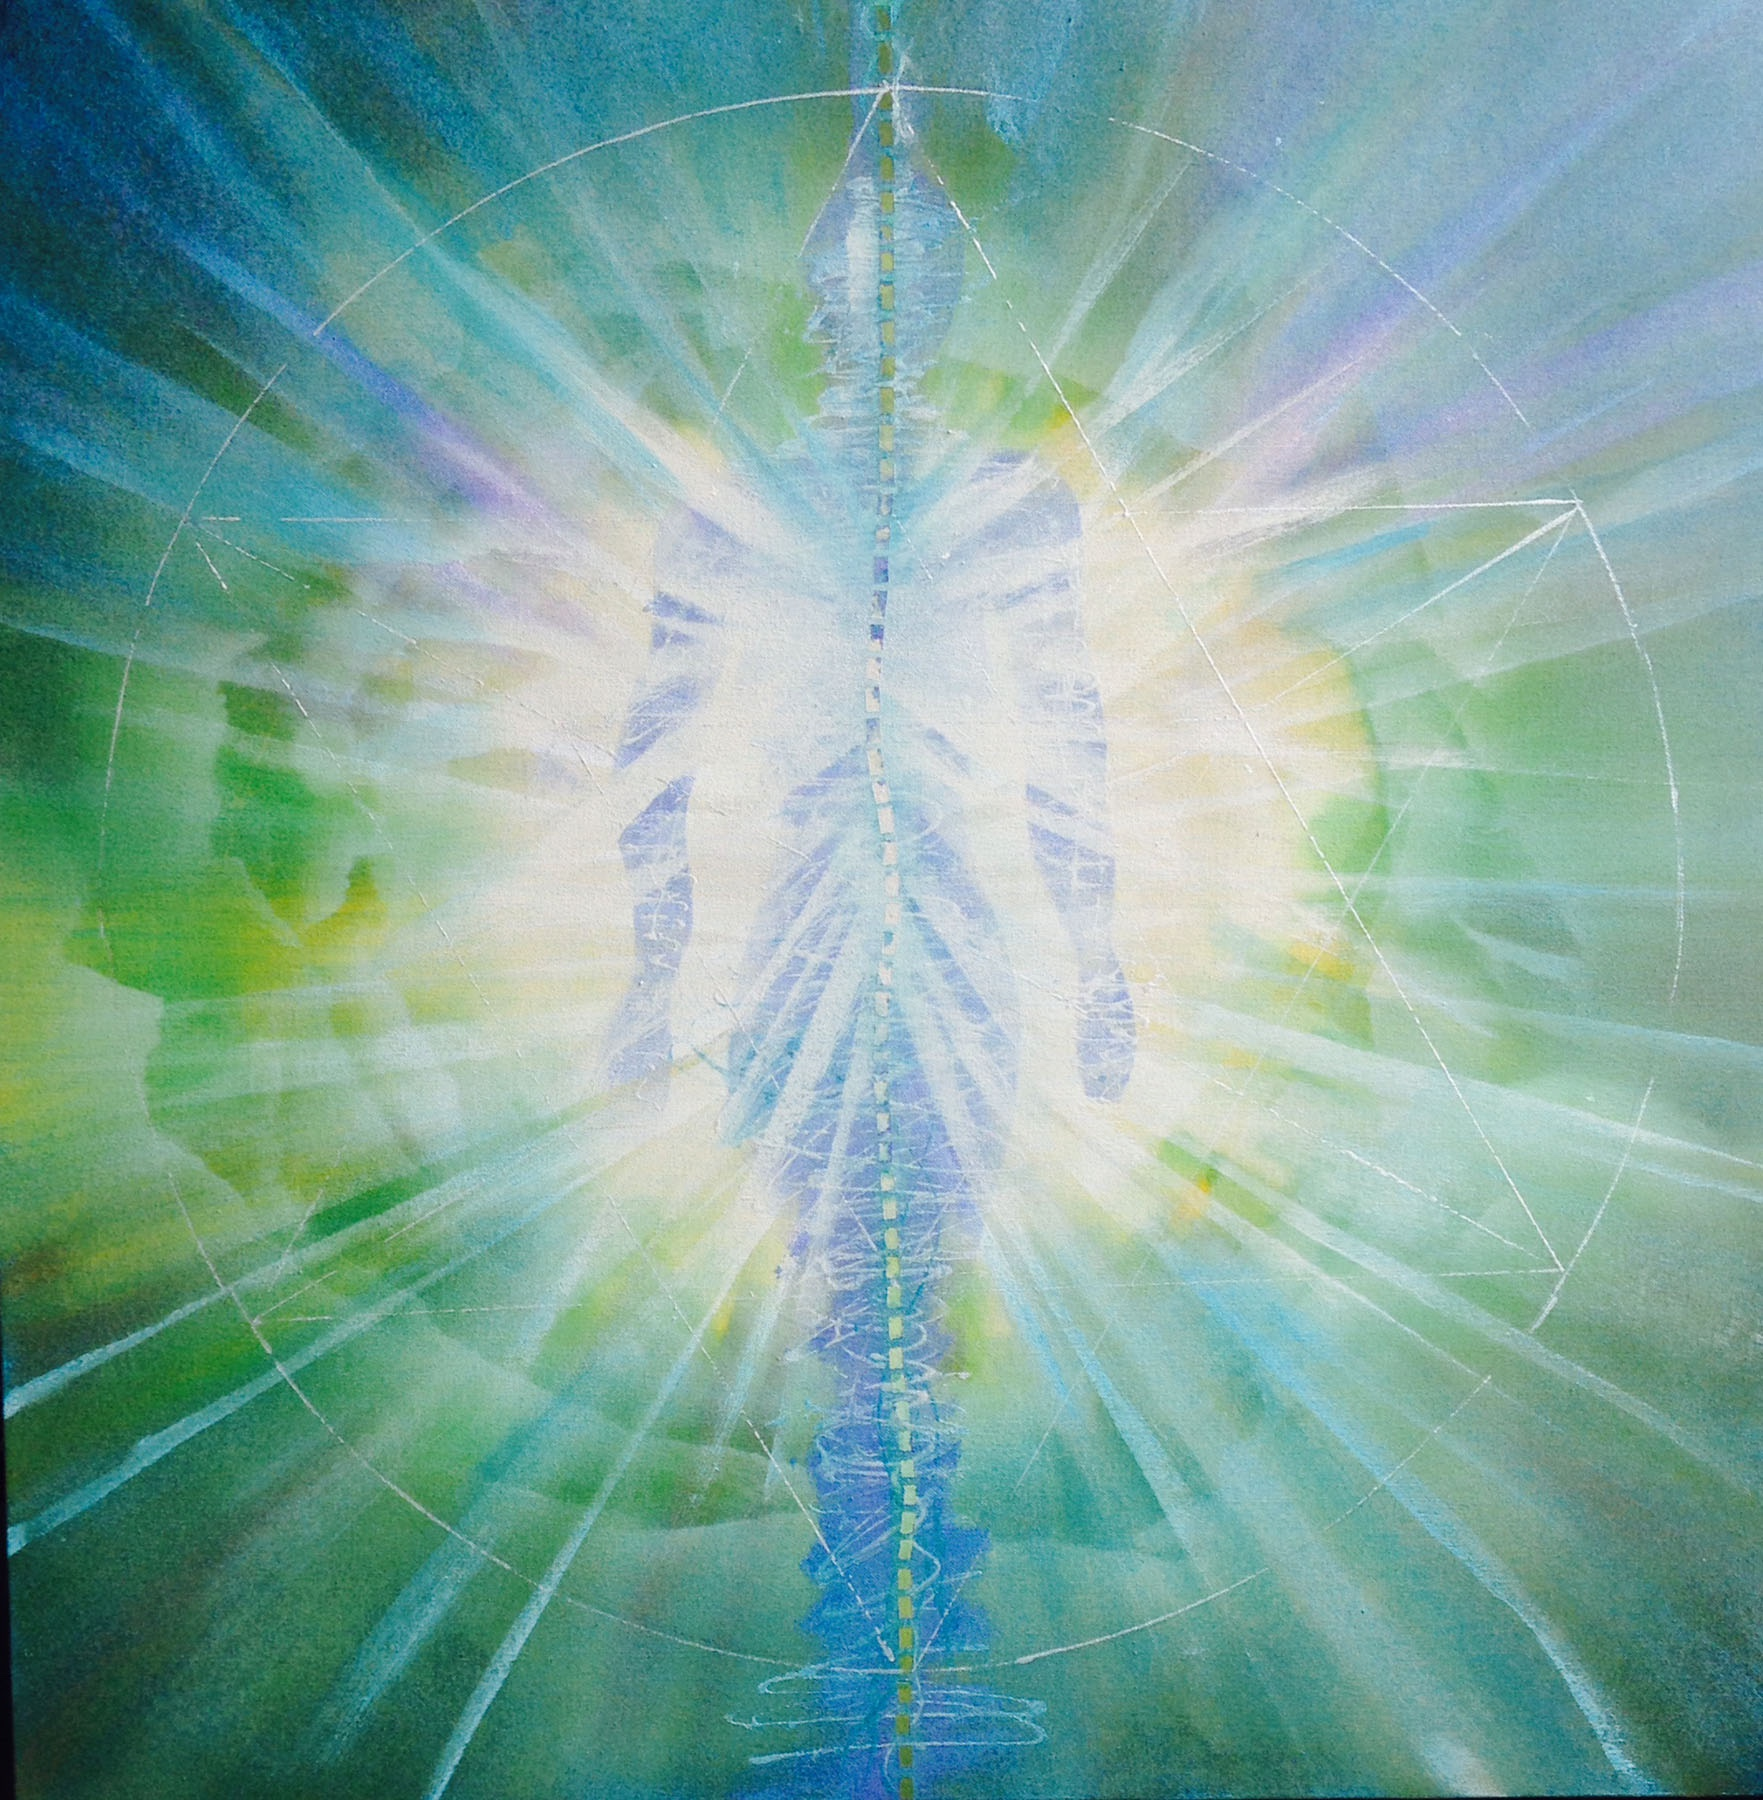 Wings of Light:  currently showing at Pine Street Café in Grass Valley, CA, and available as a giclée print.